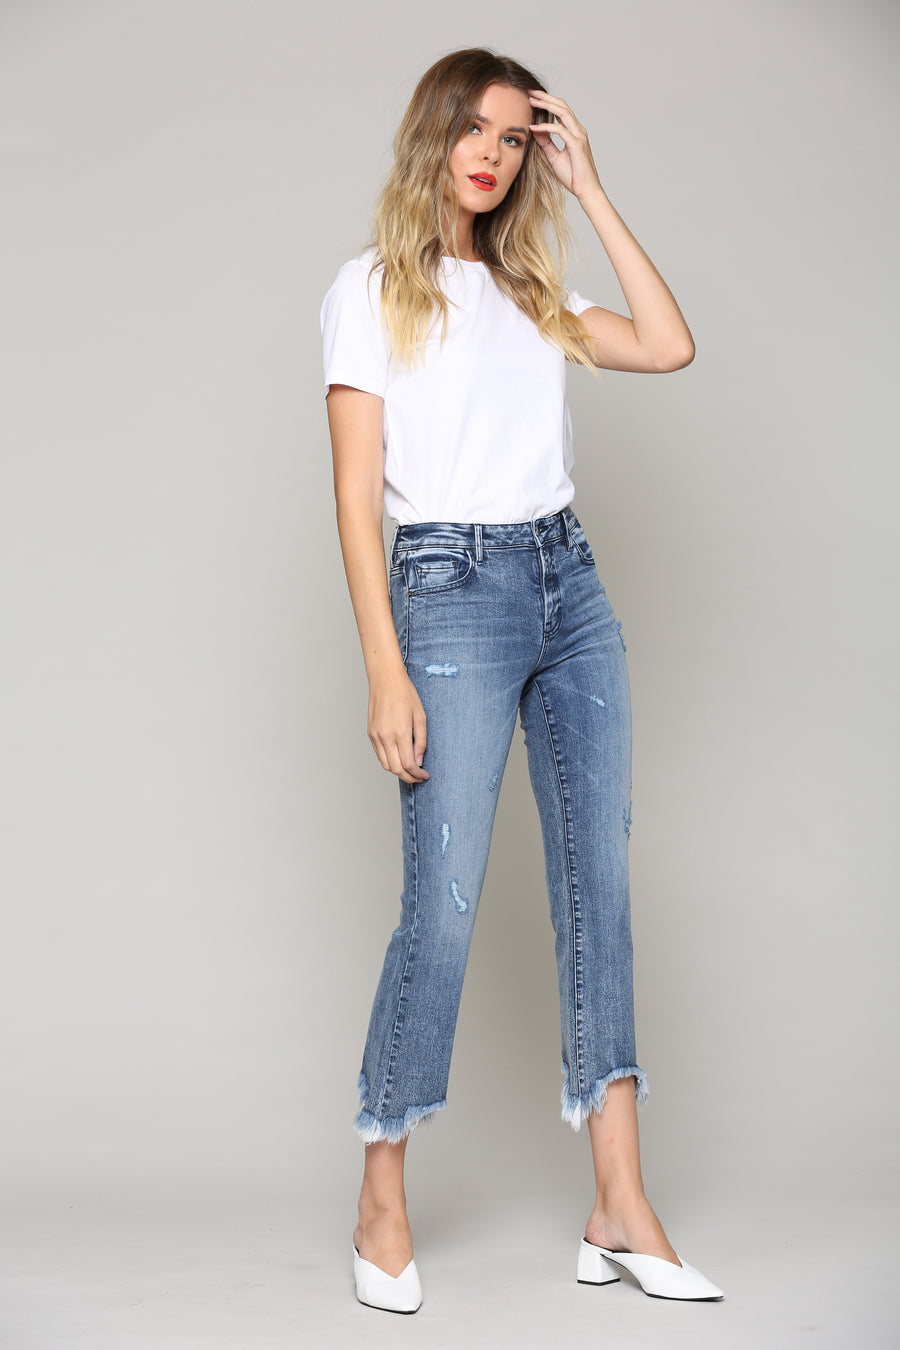 HAPPI<p/> MEDIUM WASH CROPPED FLARE WITH FRAYED HEM